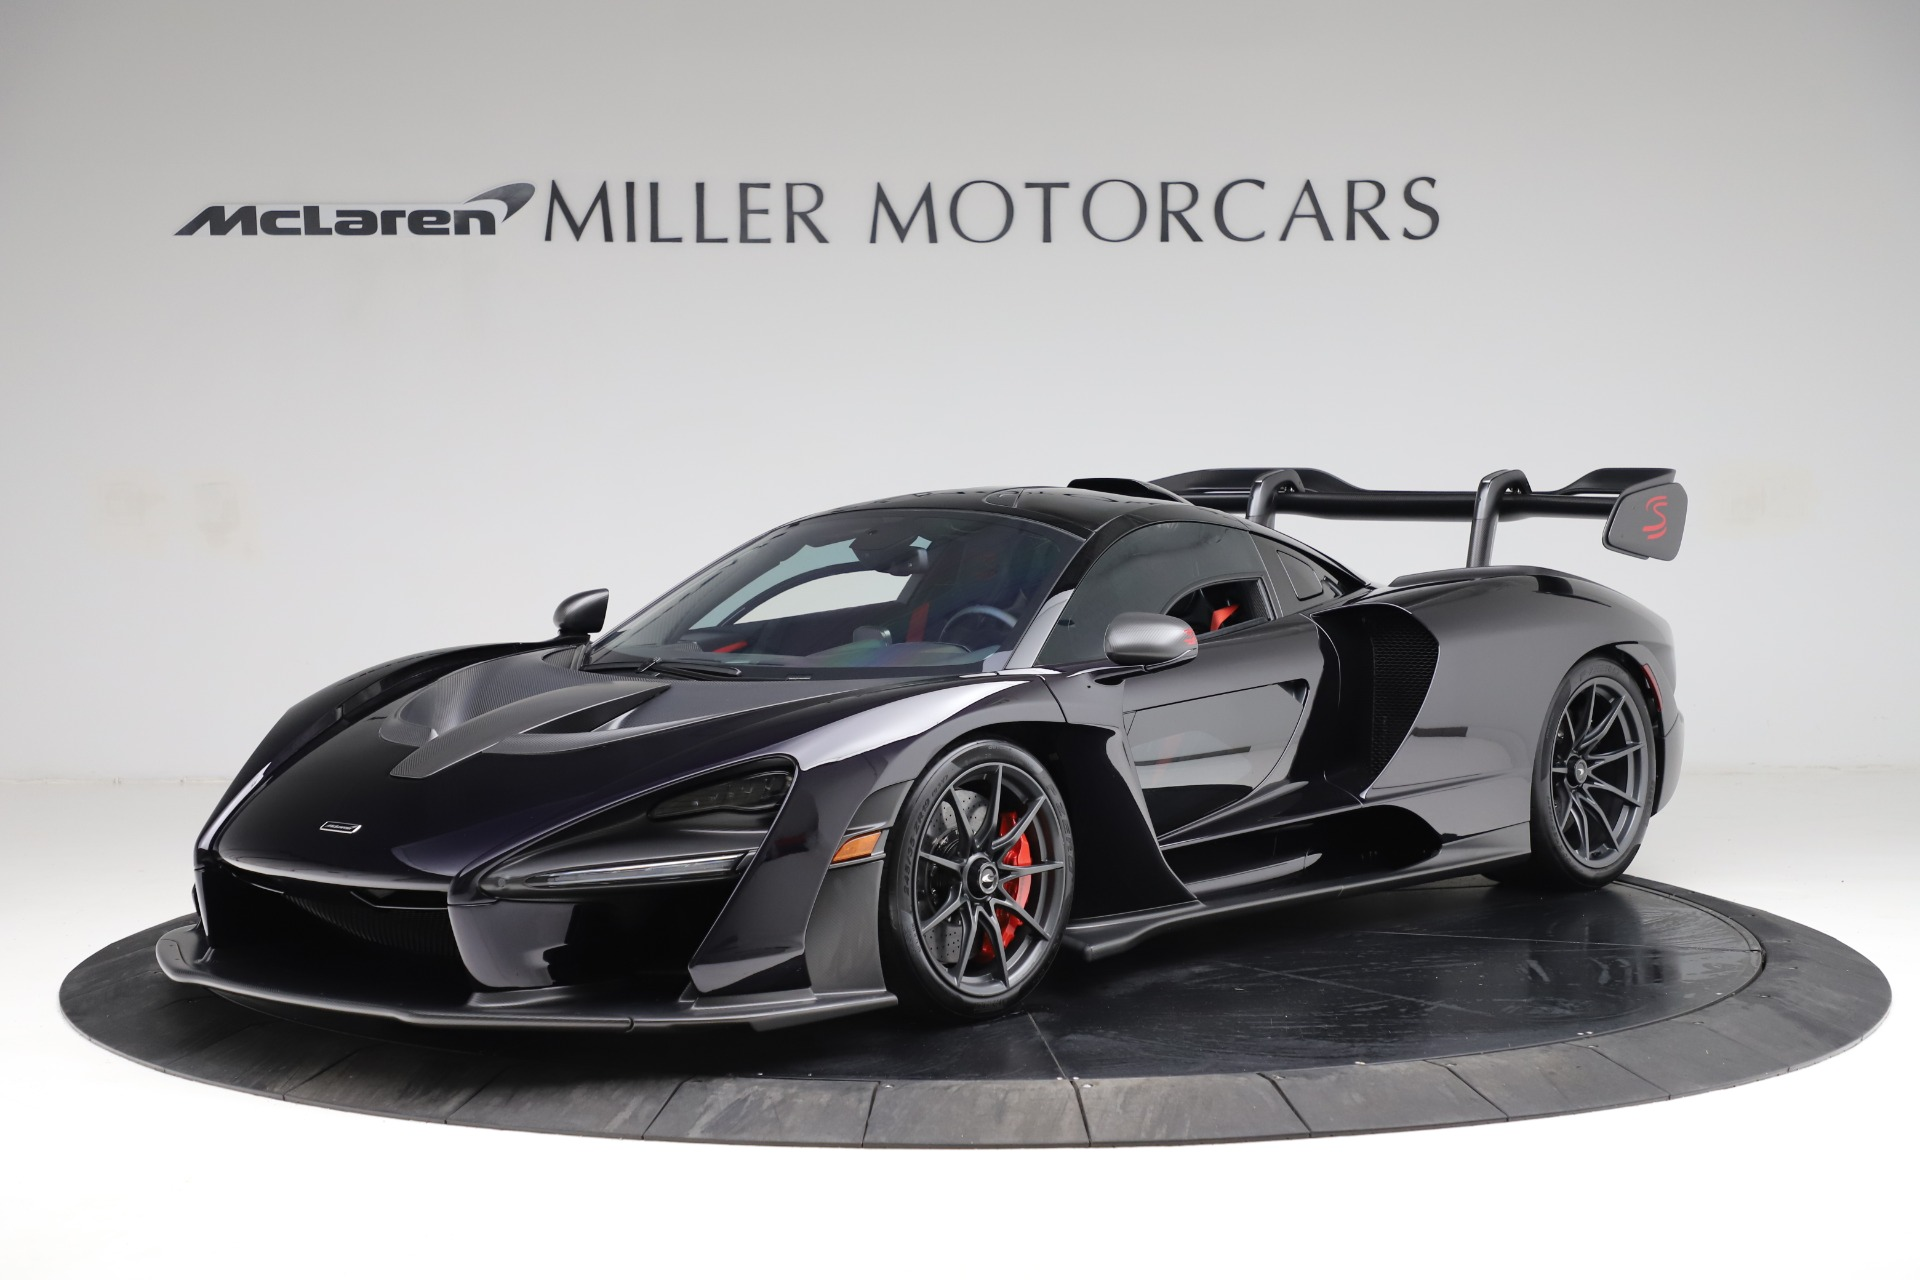 Used 2019 McLaren Senna for sale $1,195,000 at Rolls-Royce Motor Cars Greenwich in Greenwich CT 06830 1